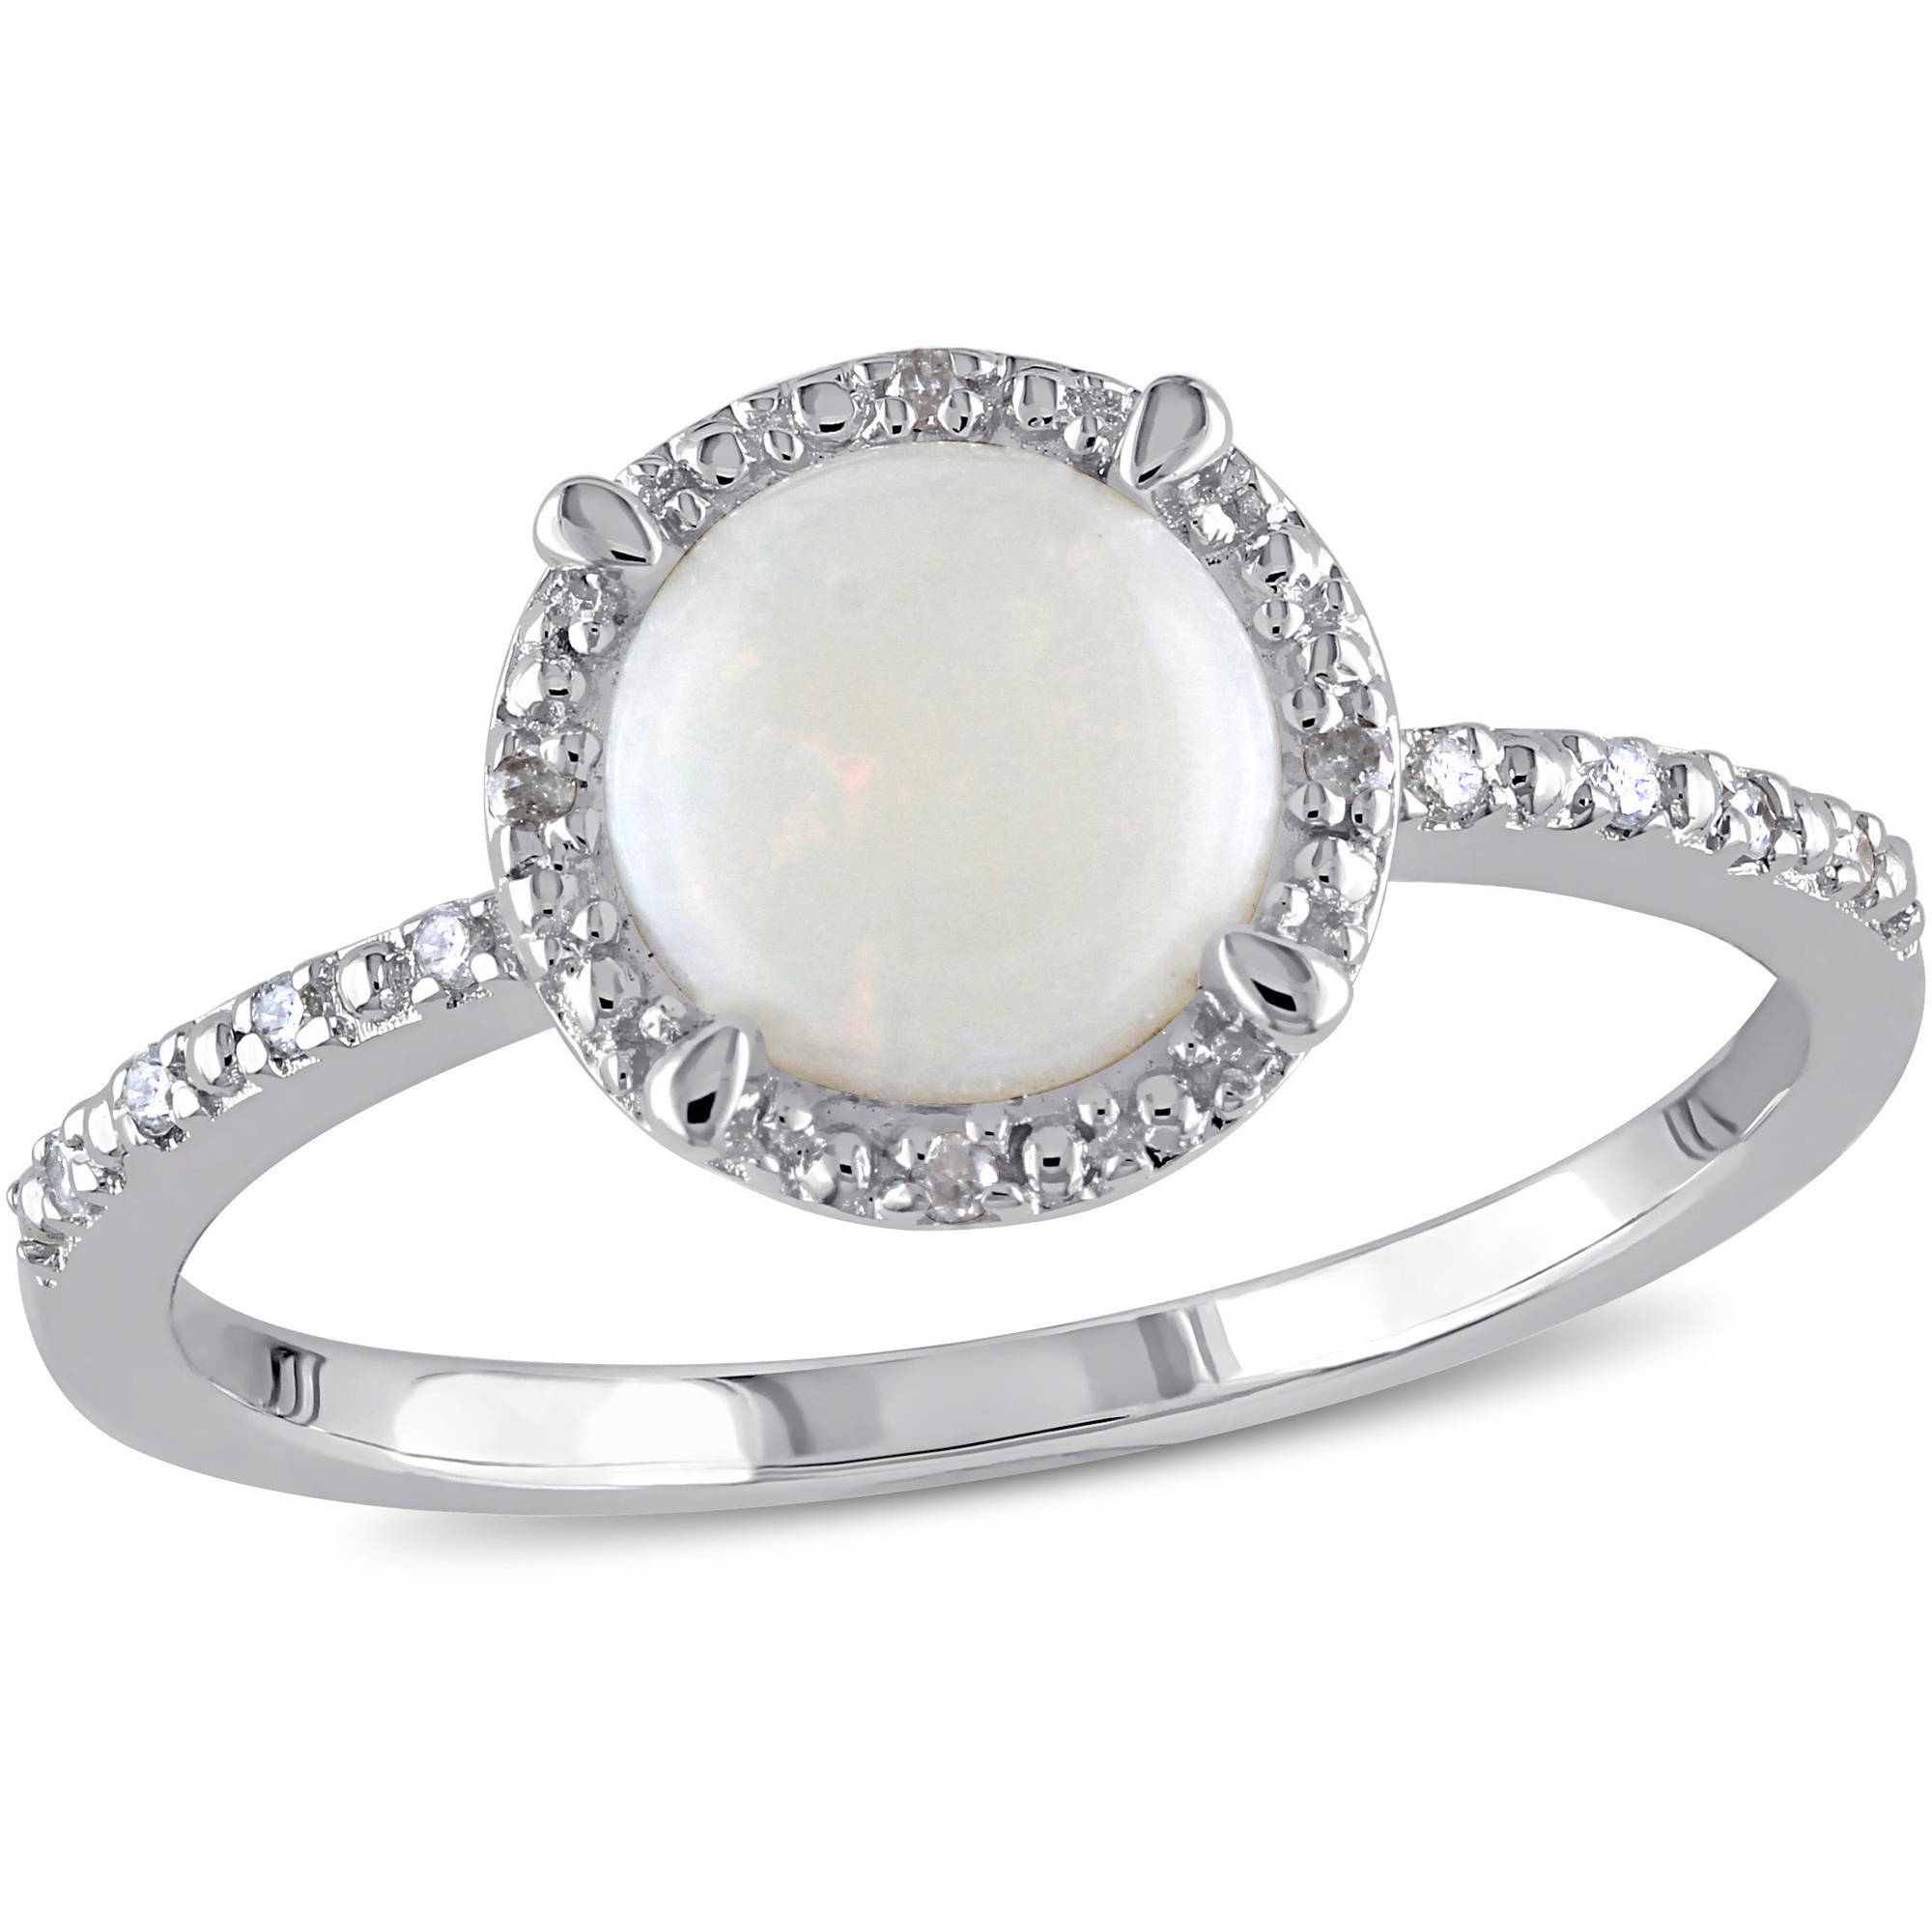 Miabella 1 Carat T.G.W. Opal and Diamond-Accent Sterling Silver Halo Ring by Delmar Manufacturing LLC